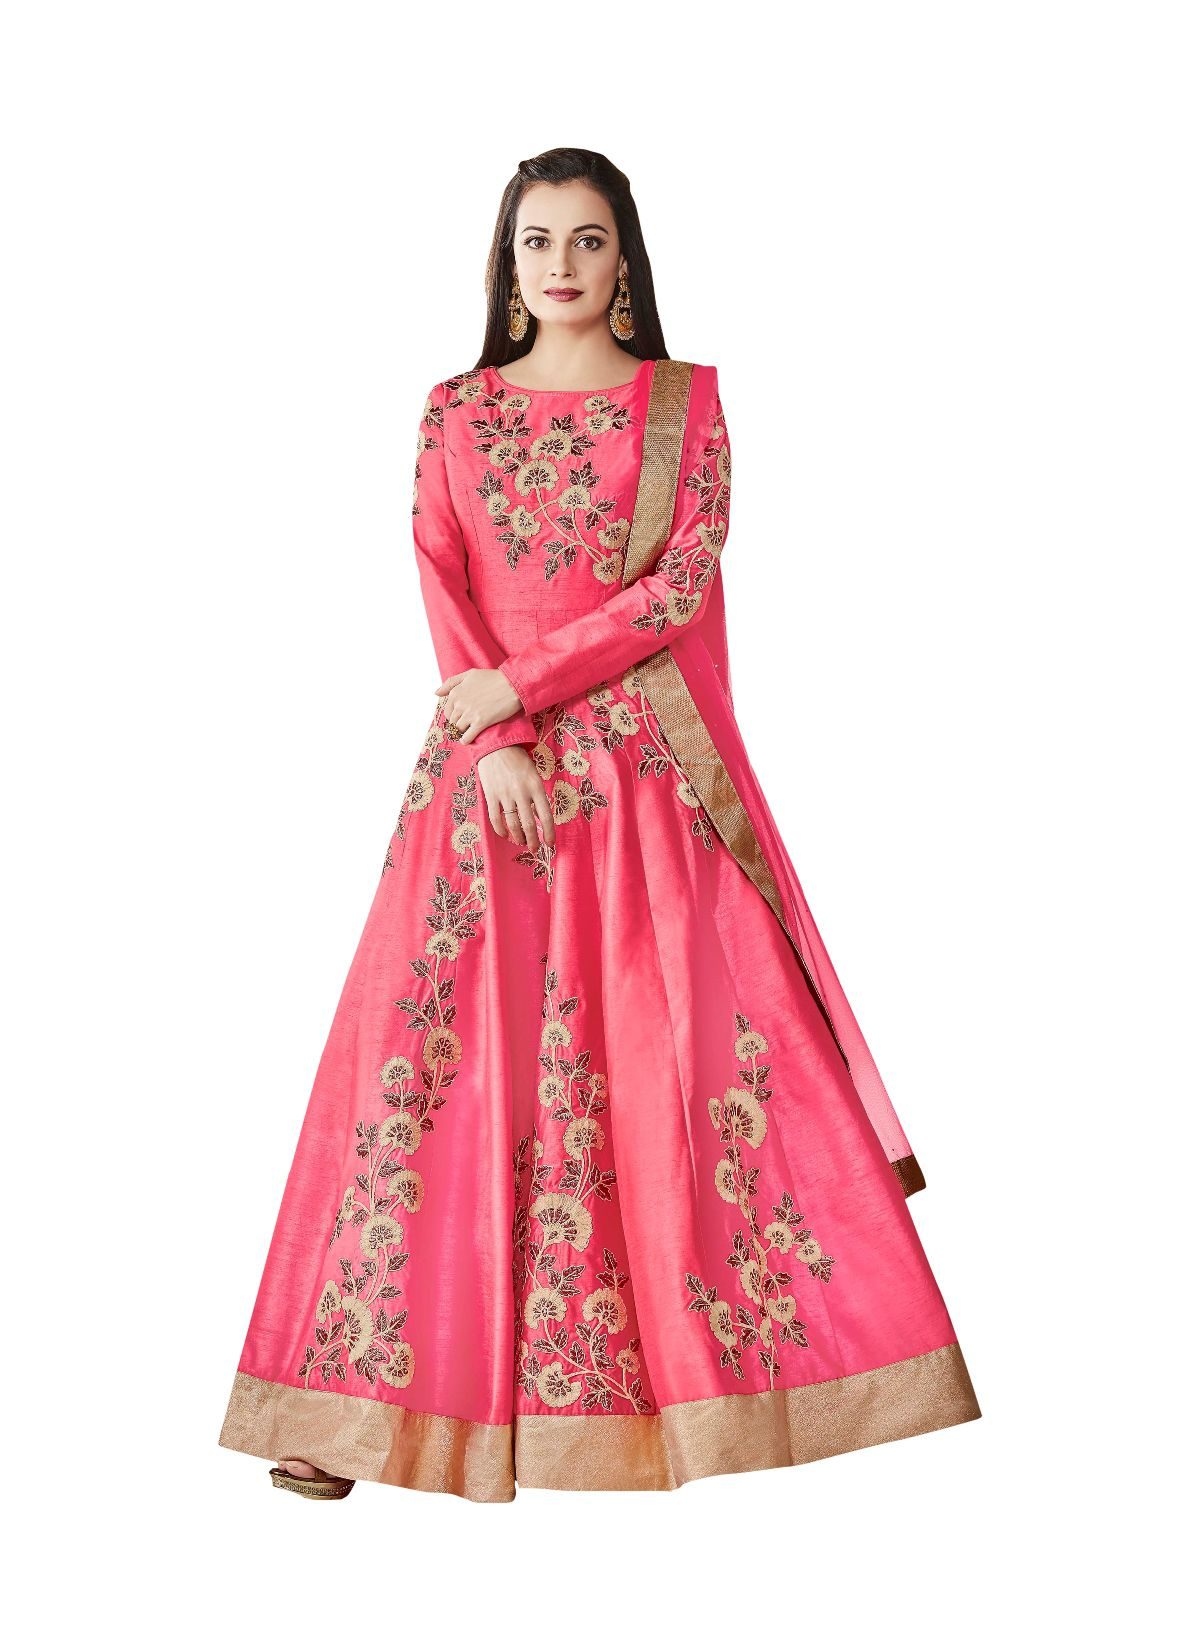 1eba4e4b11 Style Amaze Pink Silk Anarkali Semi-Stitched Suit - Buy Style Amaze Pink  Silk Anarkali Semi-Stitched Suit Online at Best Prices in India on Snapdeal